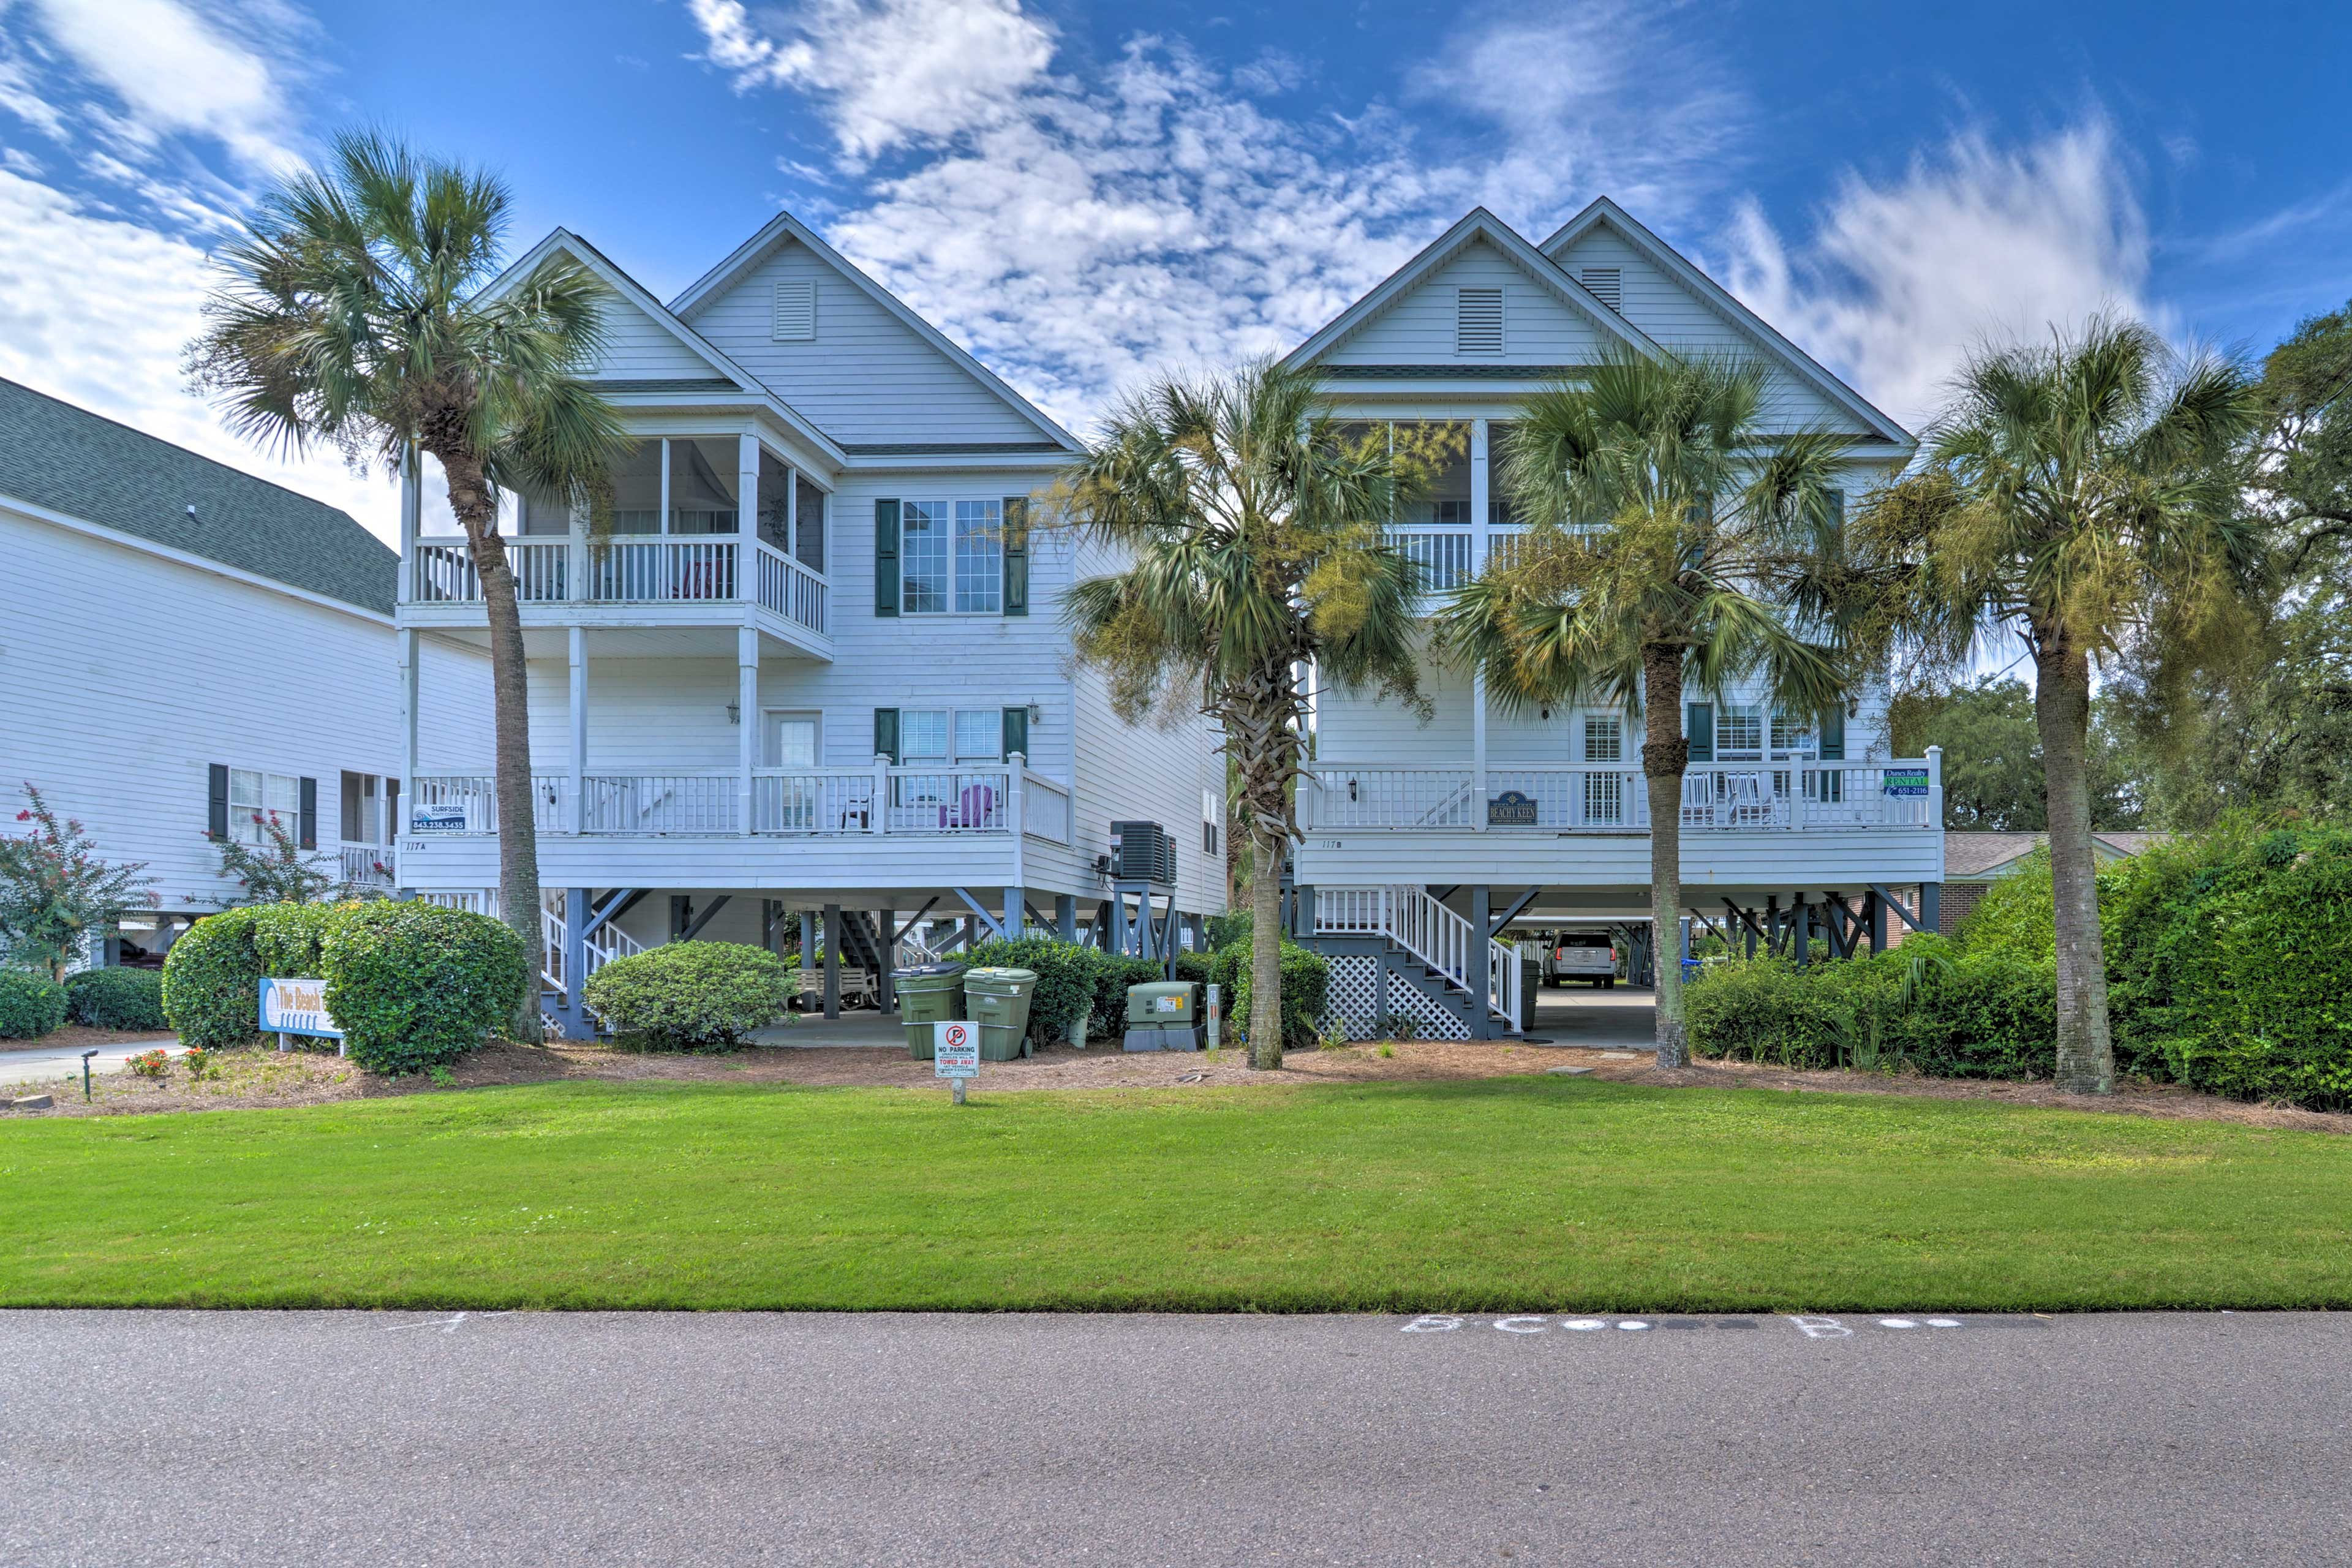 Forget the mountains - Surfside Beach is calling to you!